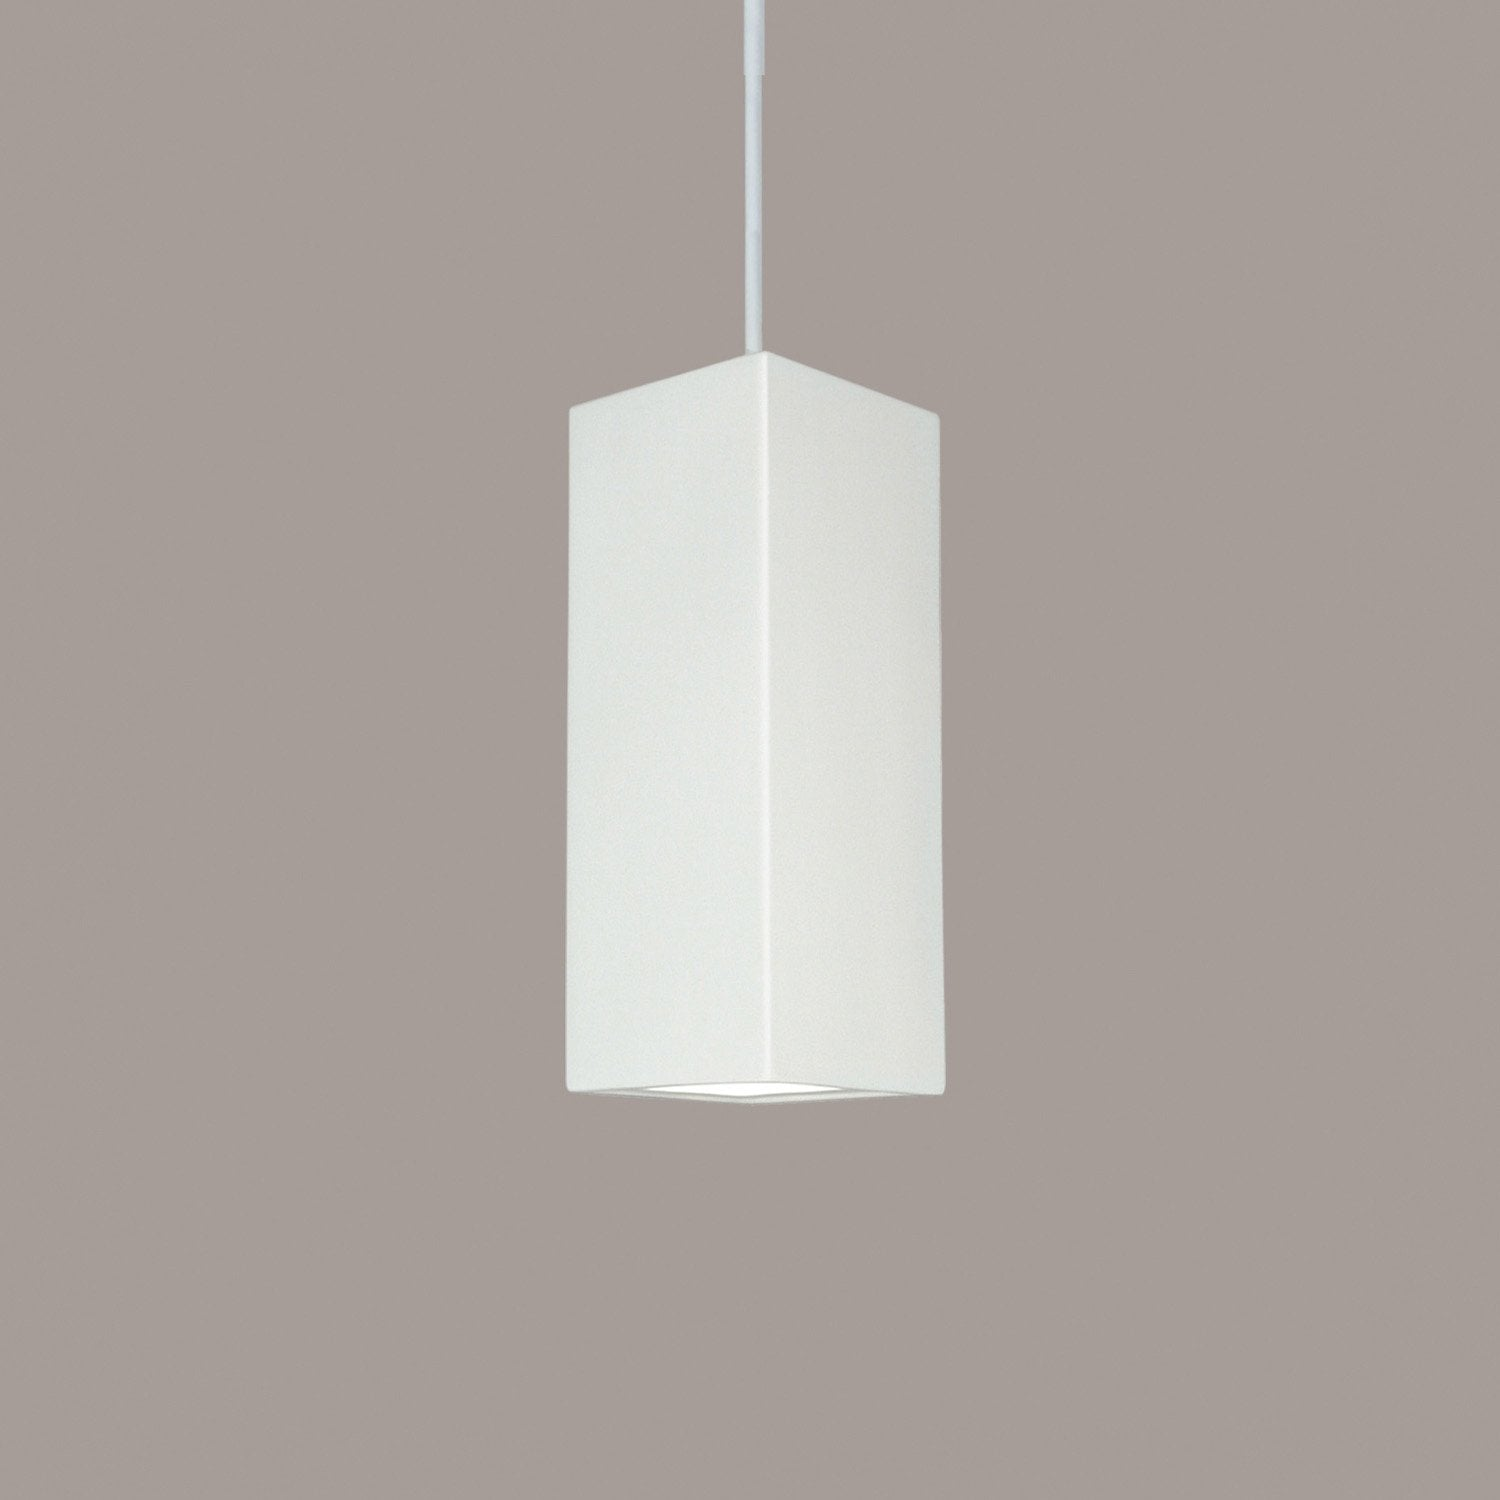 A19 P1801-CFL13-A18-WCC Islands of Light Collection Timor Adirondack Green Finish Pendant from A19